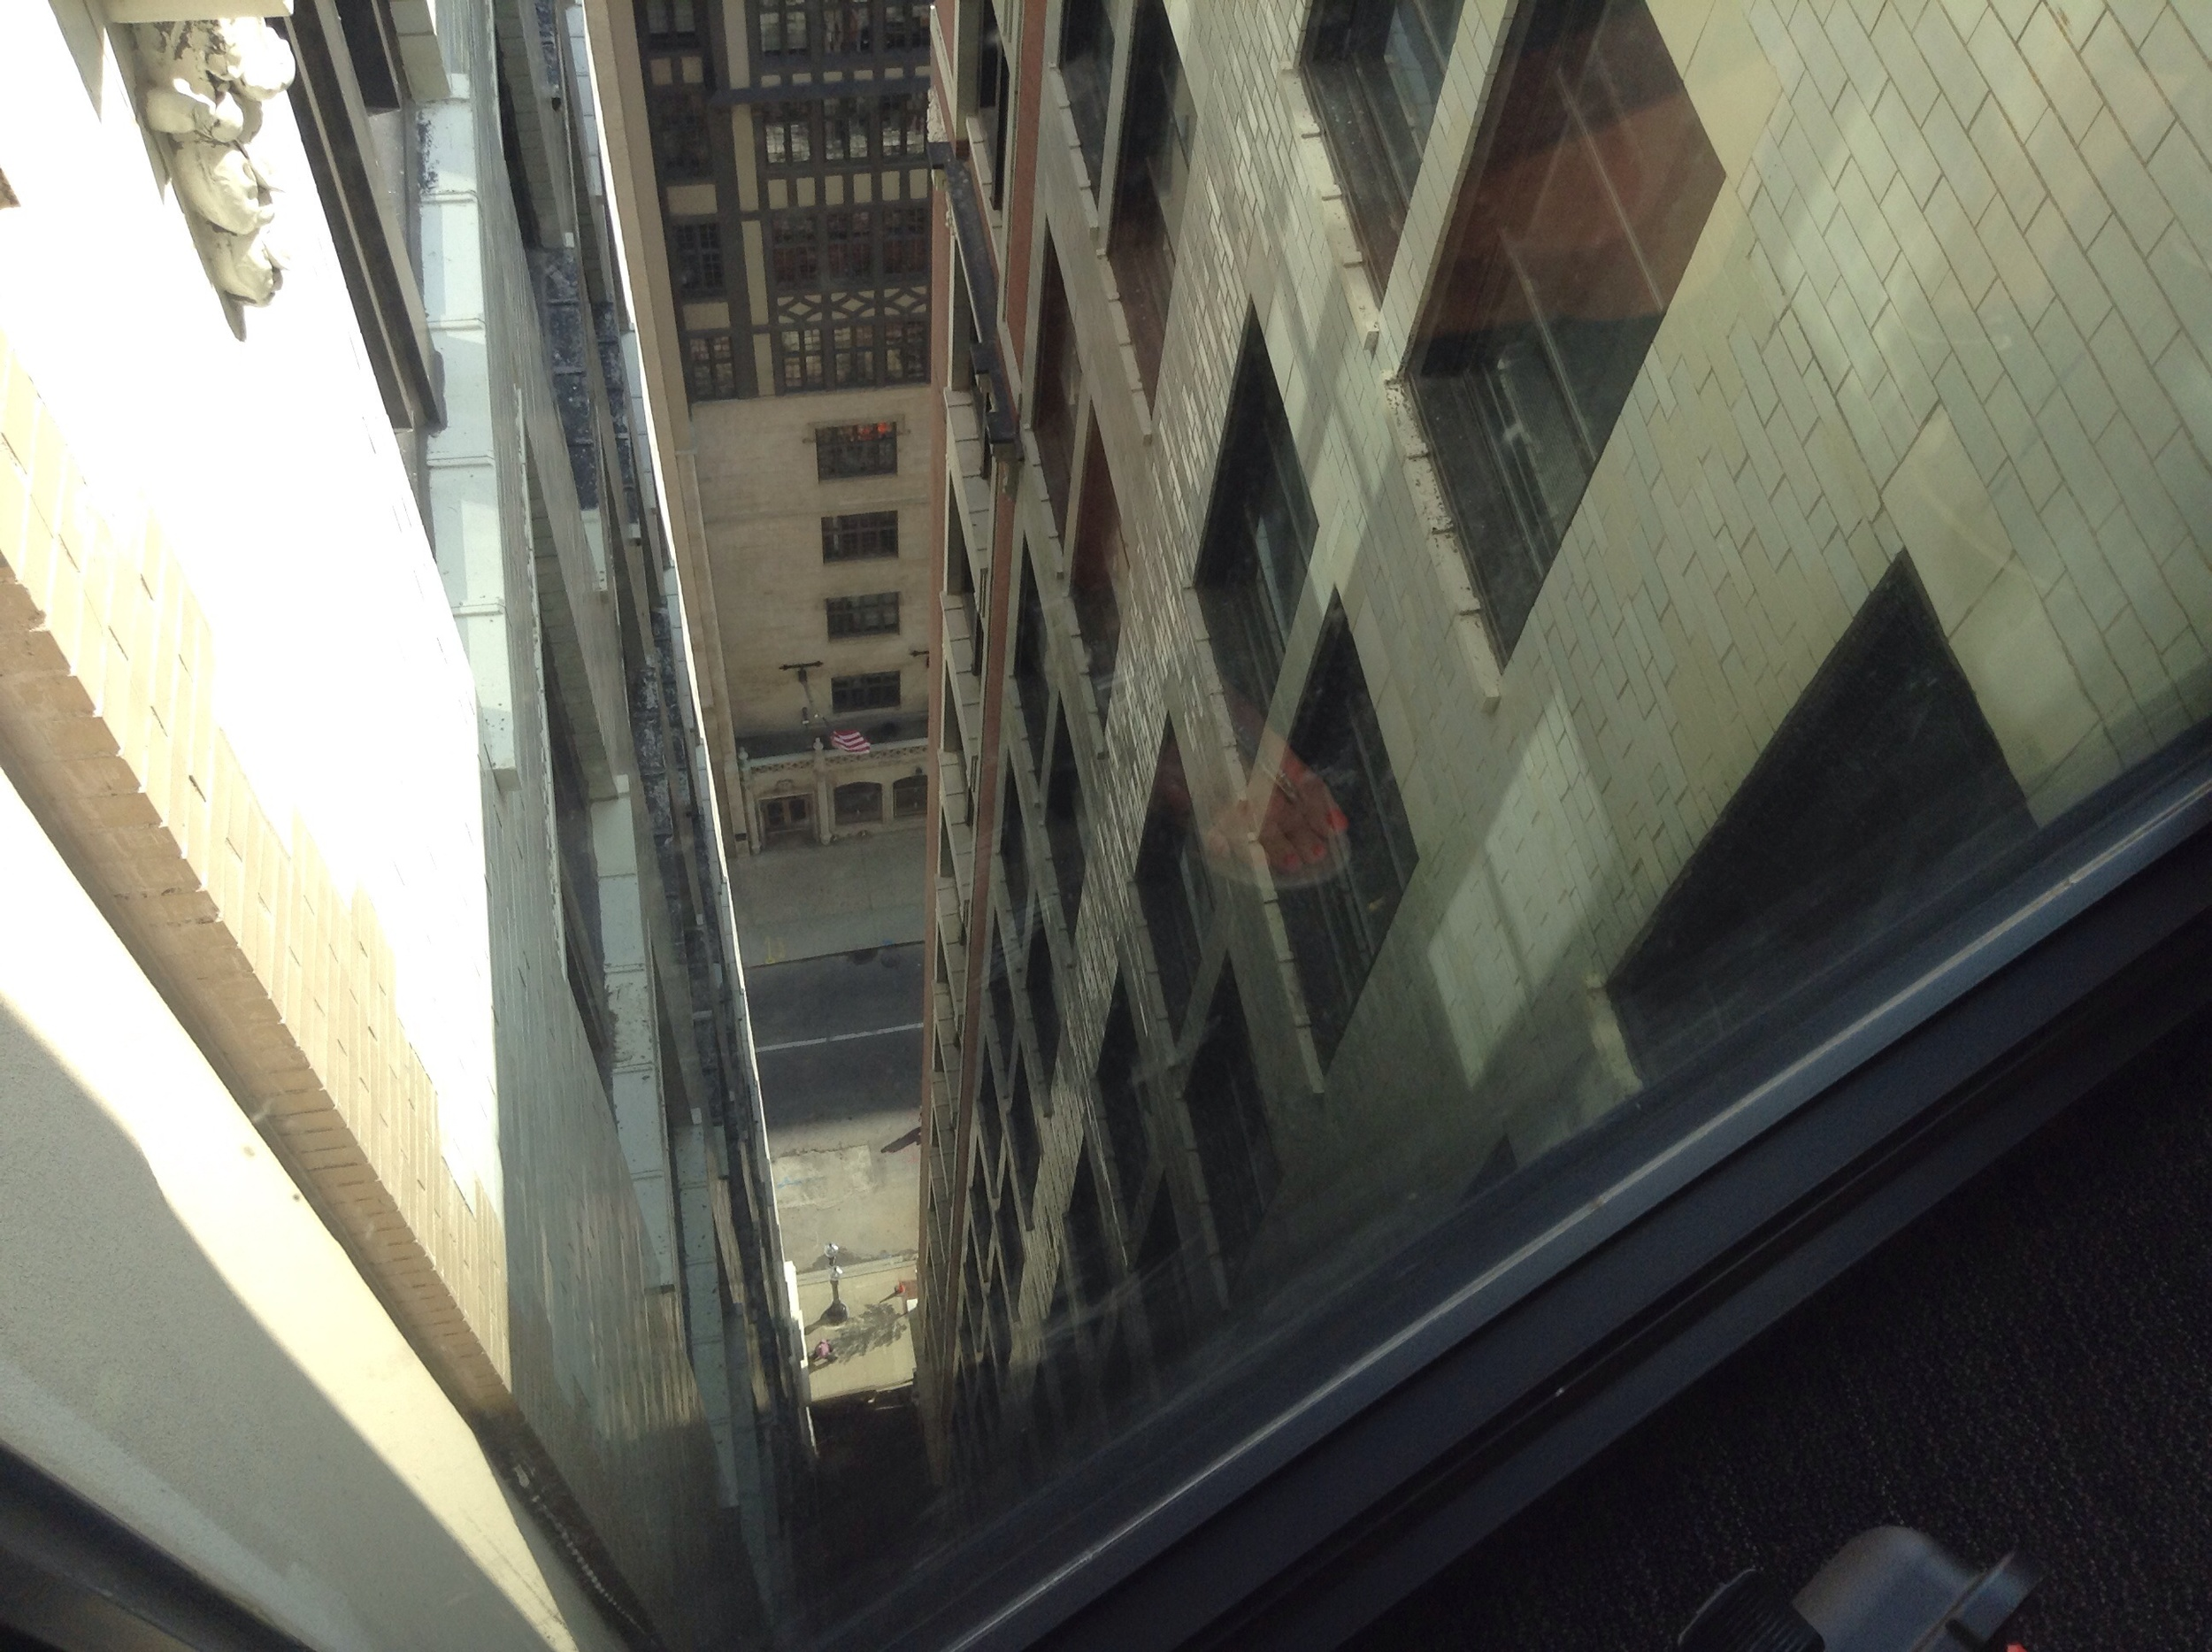 Bridge on the 16th floor, connecting the two buildings